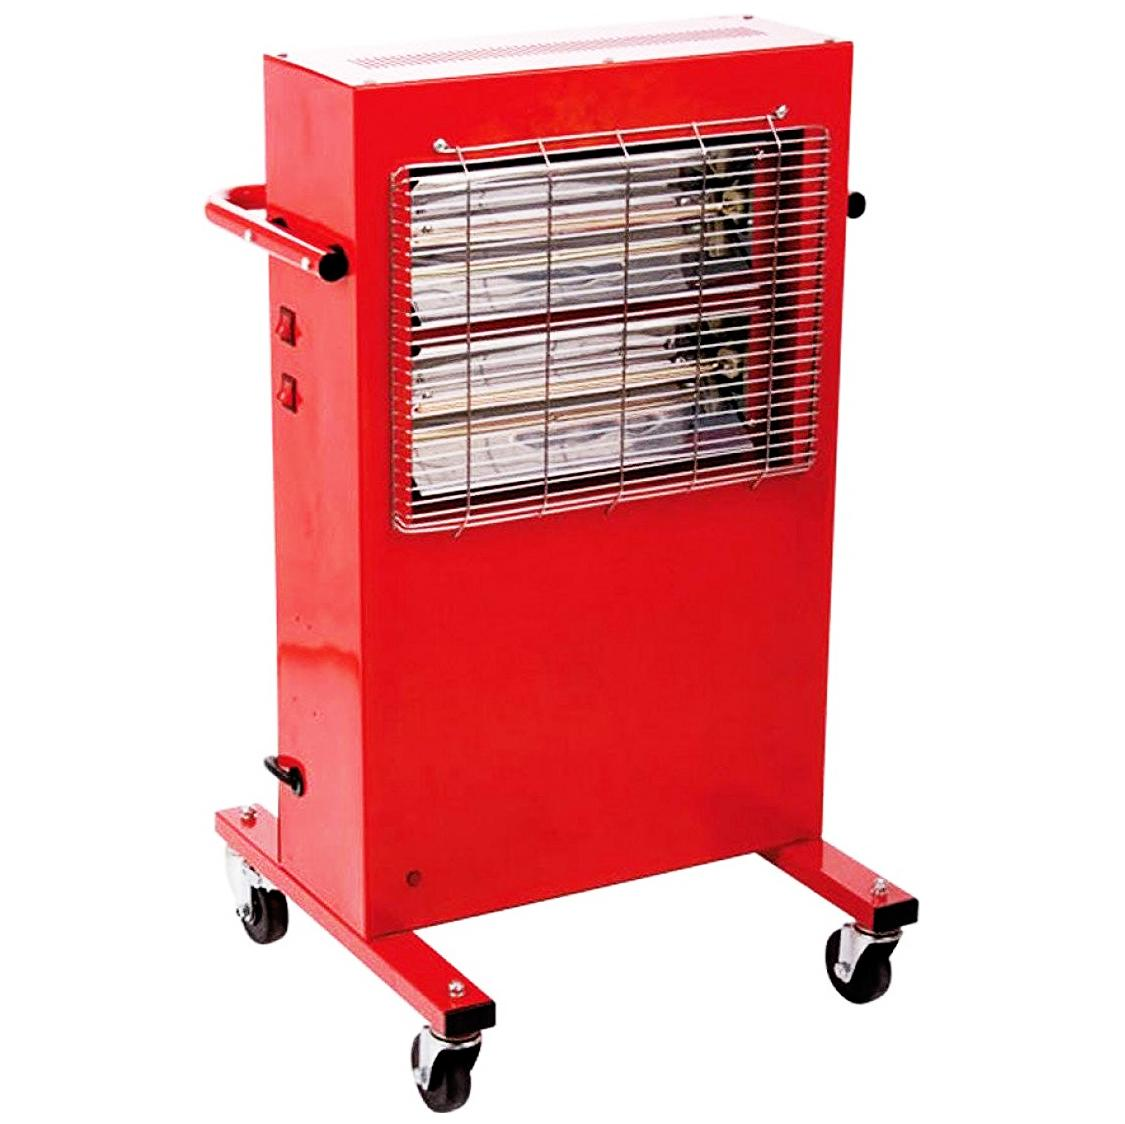 Best Portable Garage Heater : Heavy duty kw portable commercial halogen garage heater